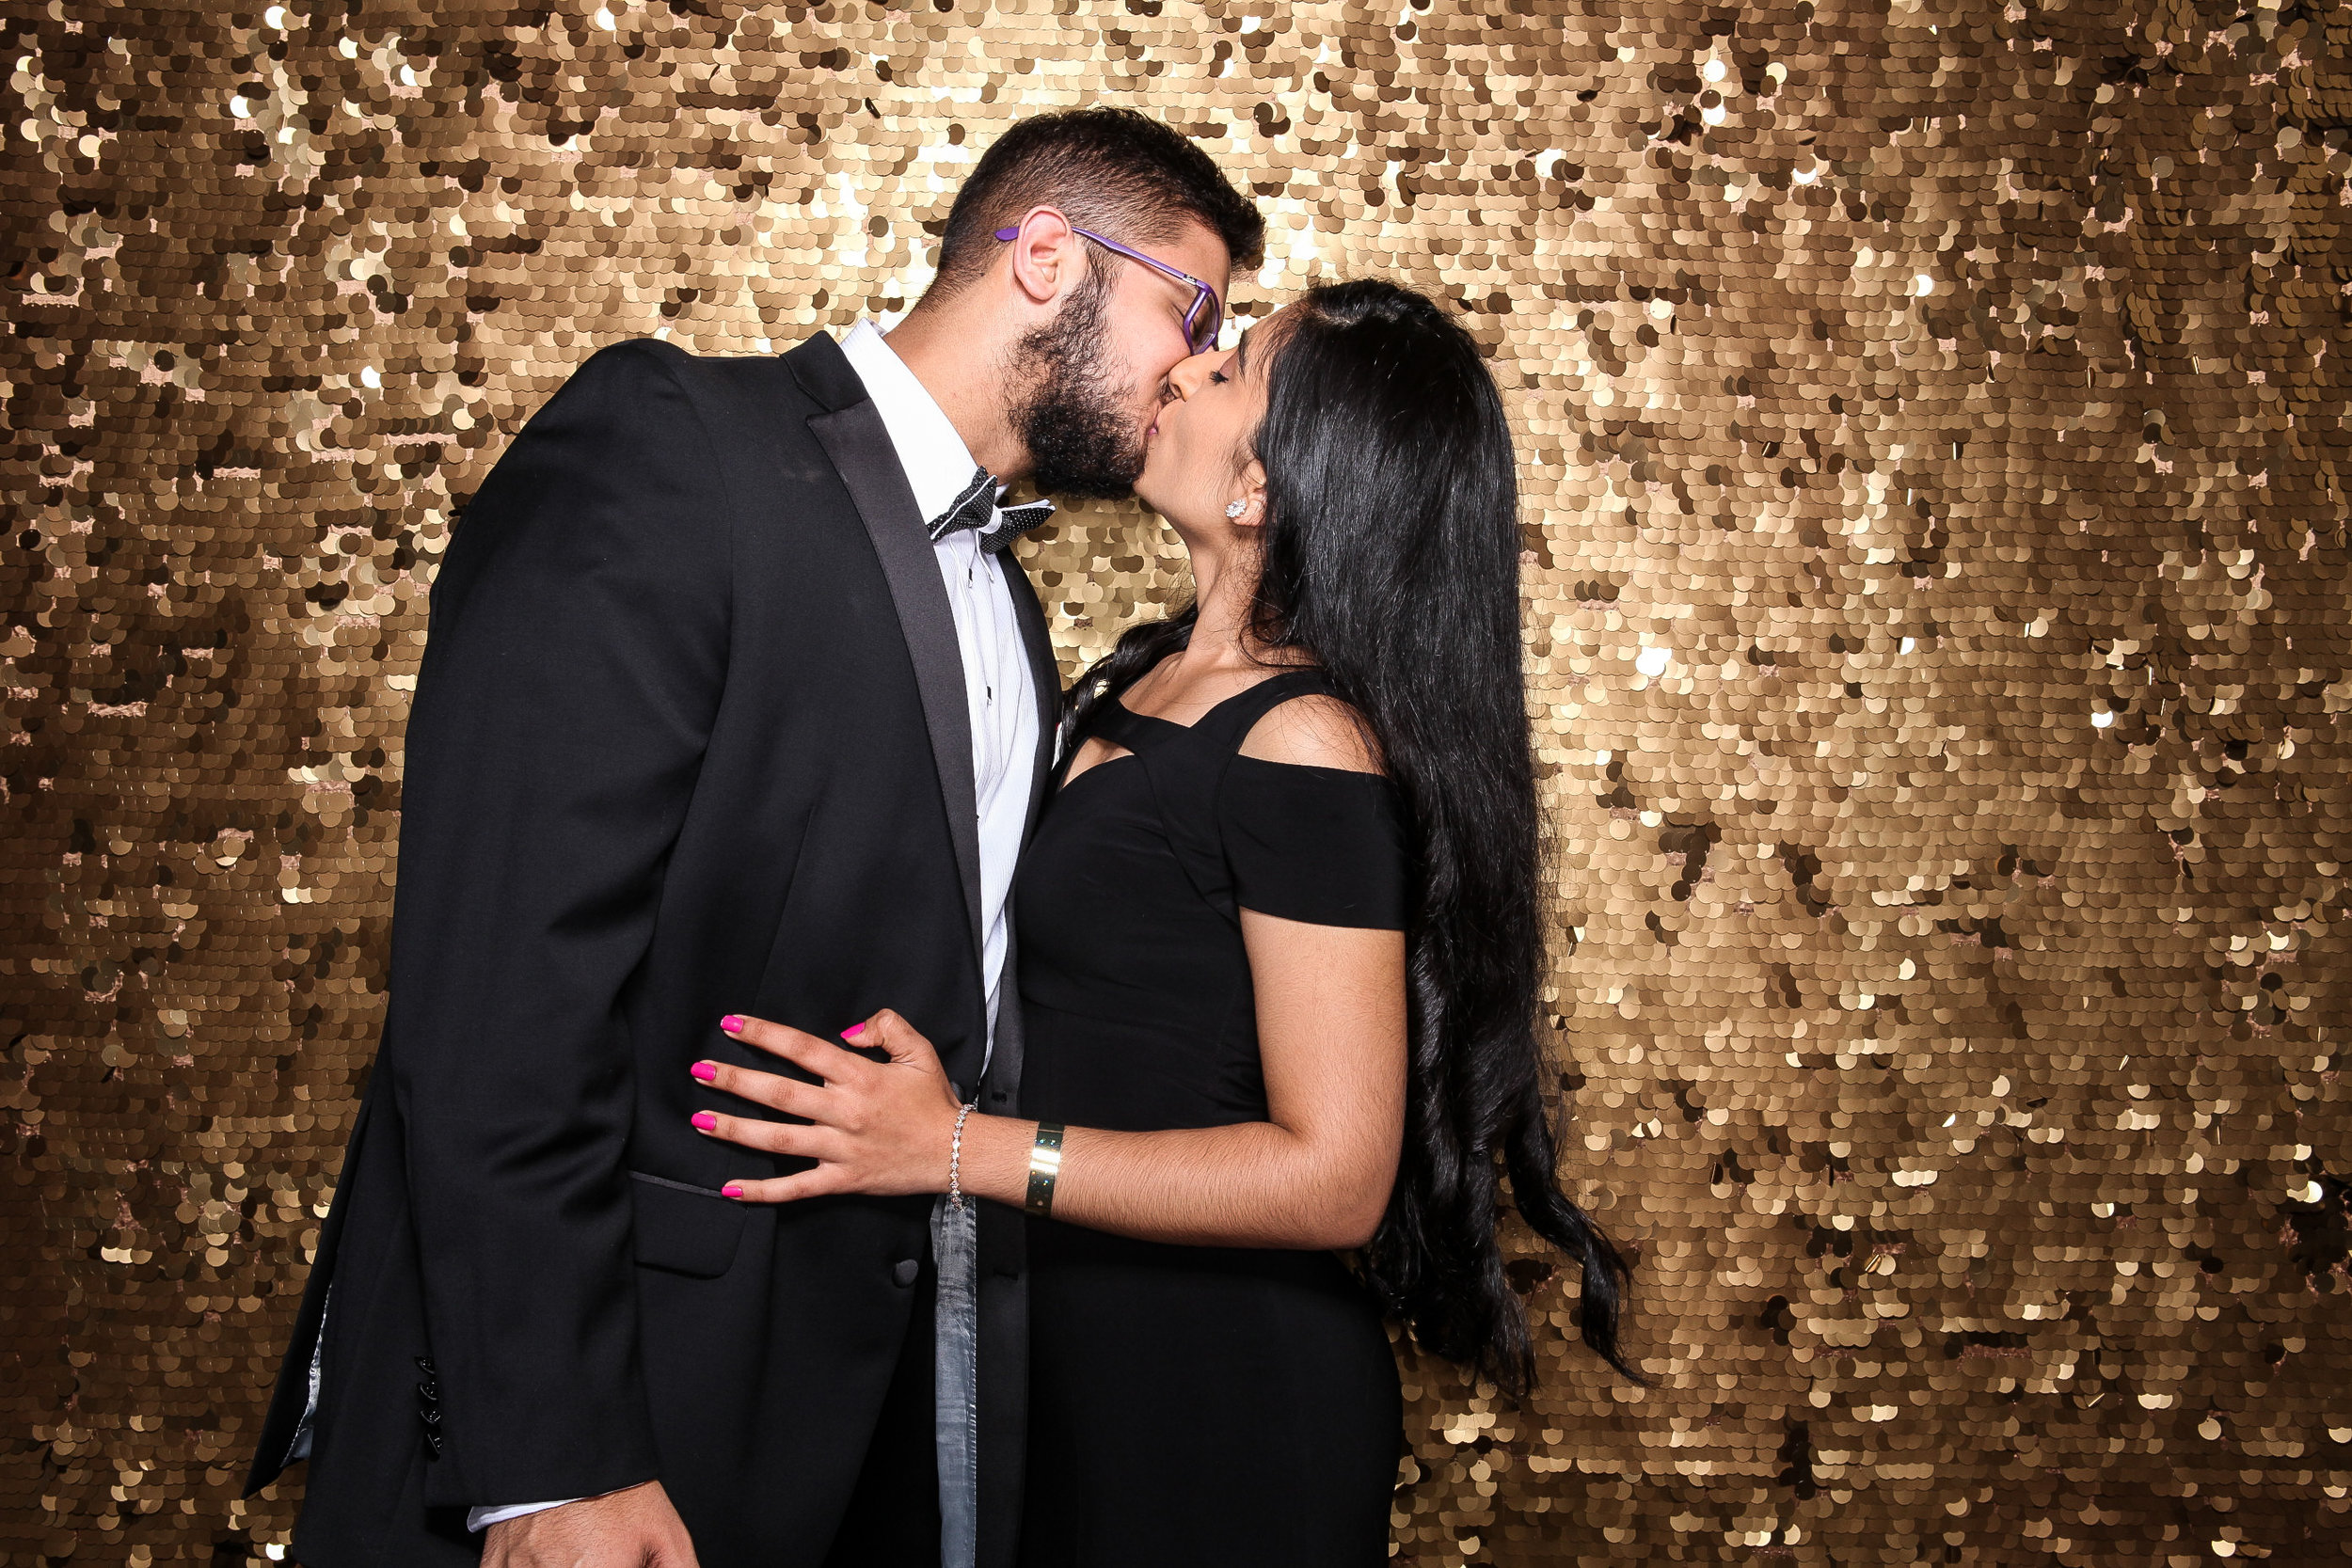 20190503_Adelphi_Senior_Formal-043.jpg